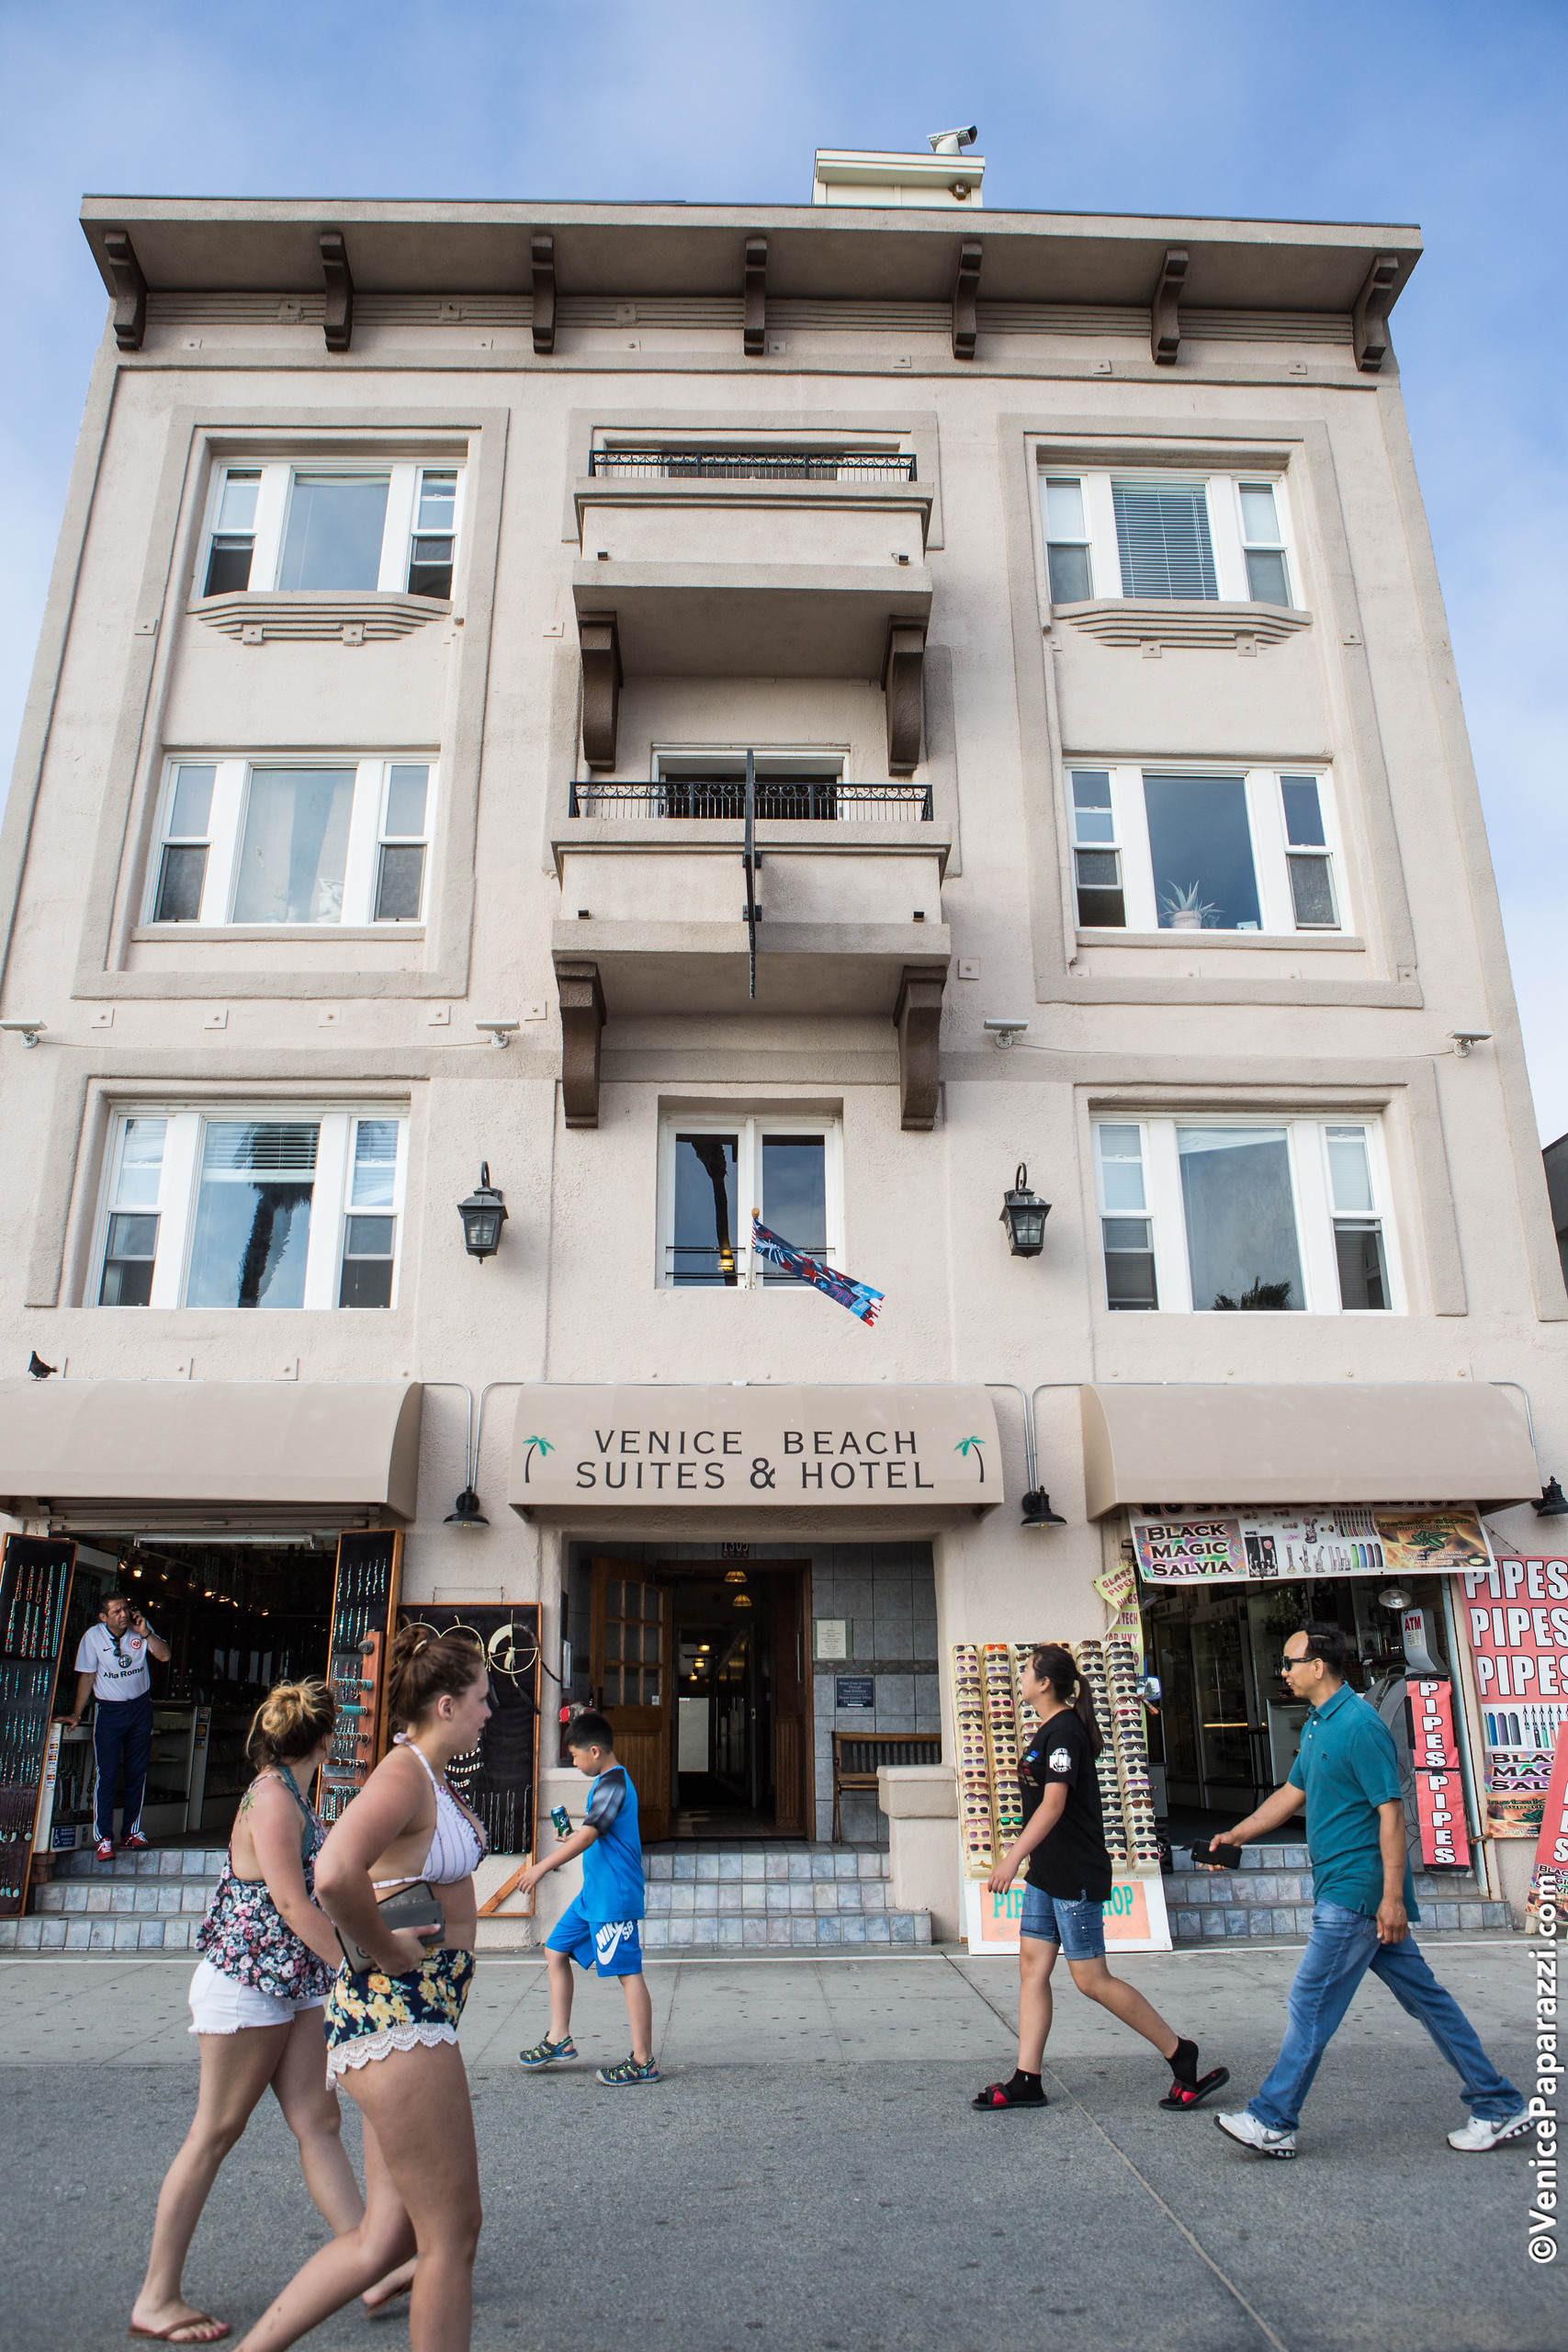 Venice Beach Suites And Hotel 1305 Ocean Front Walk Located On The Boardwalk Ca 90291